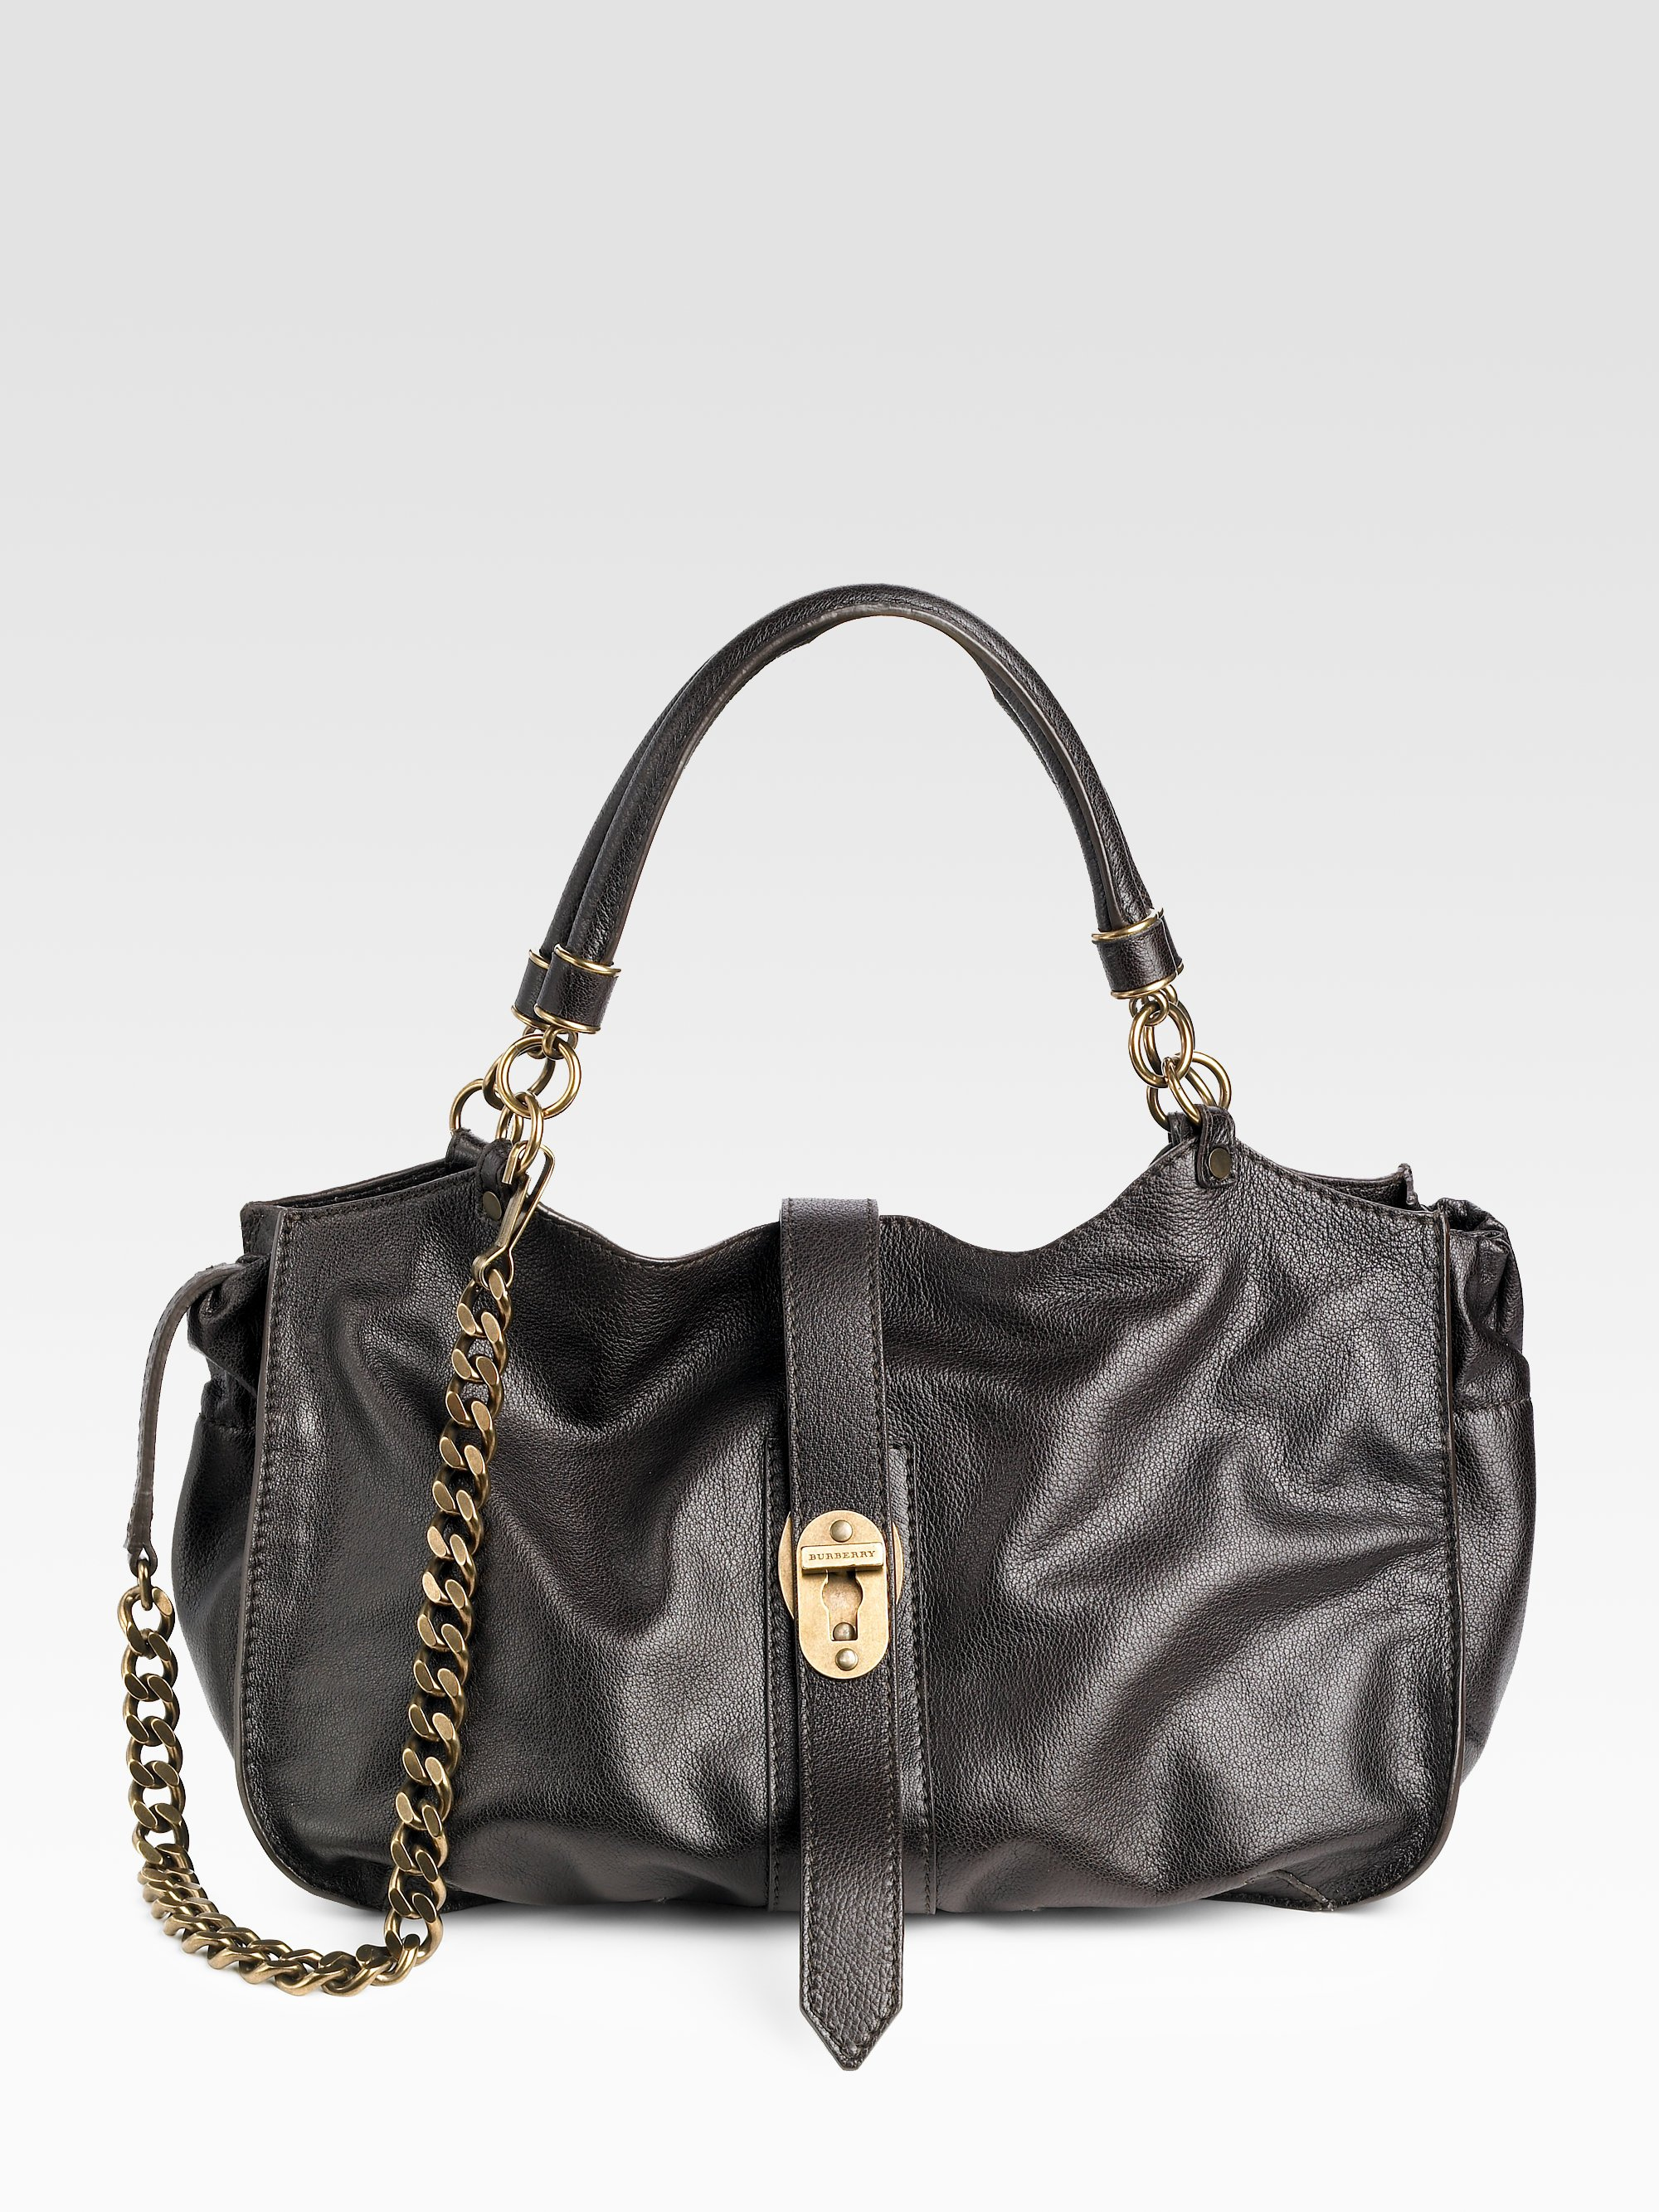 93b72ee145b8 Lyst - Burberry Medium Leather Chain Tote in Brown